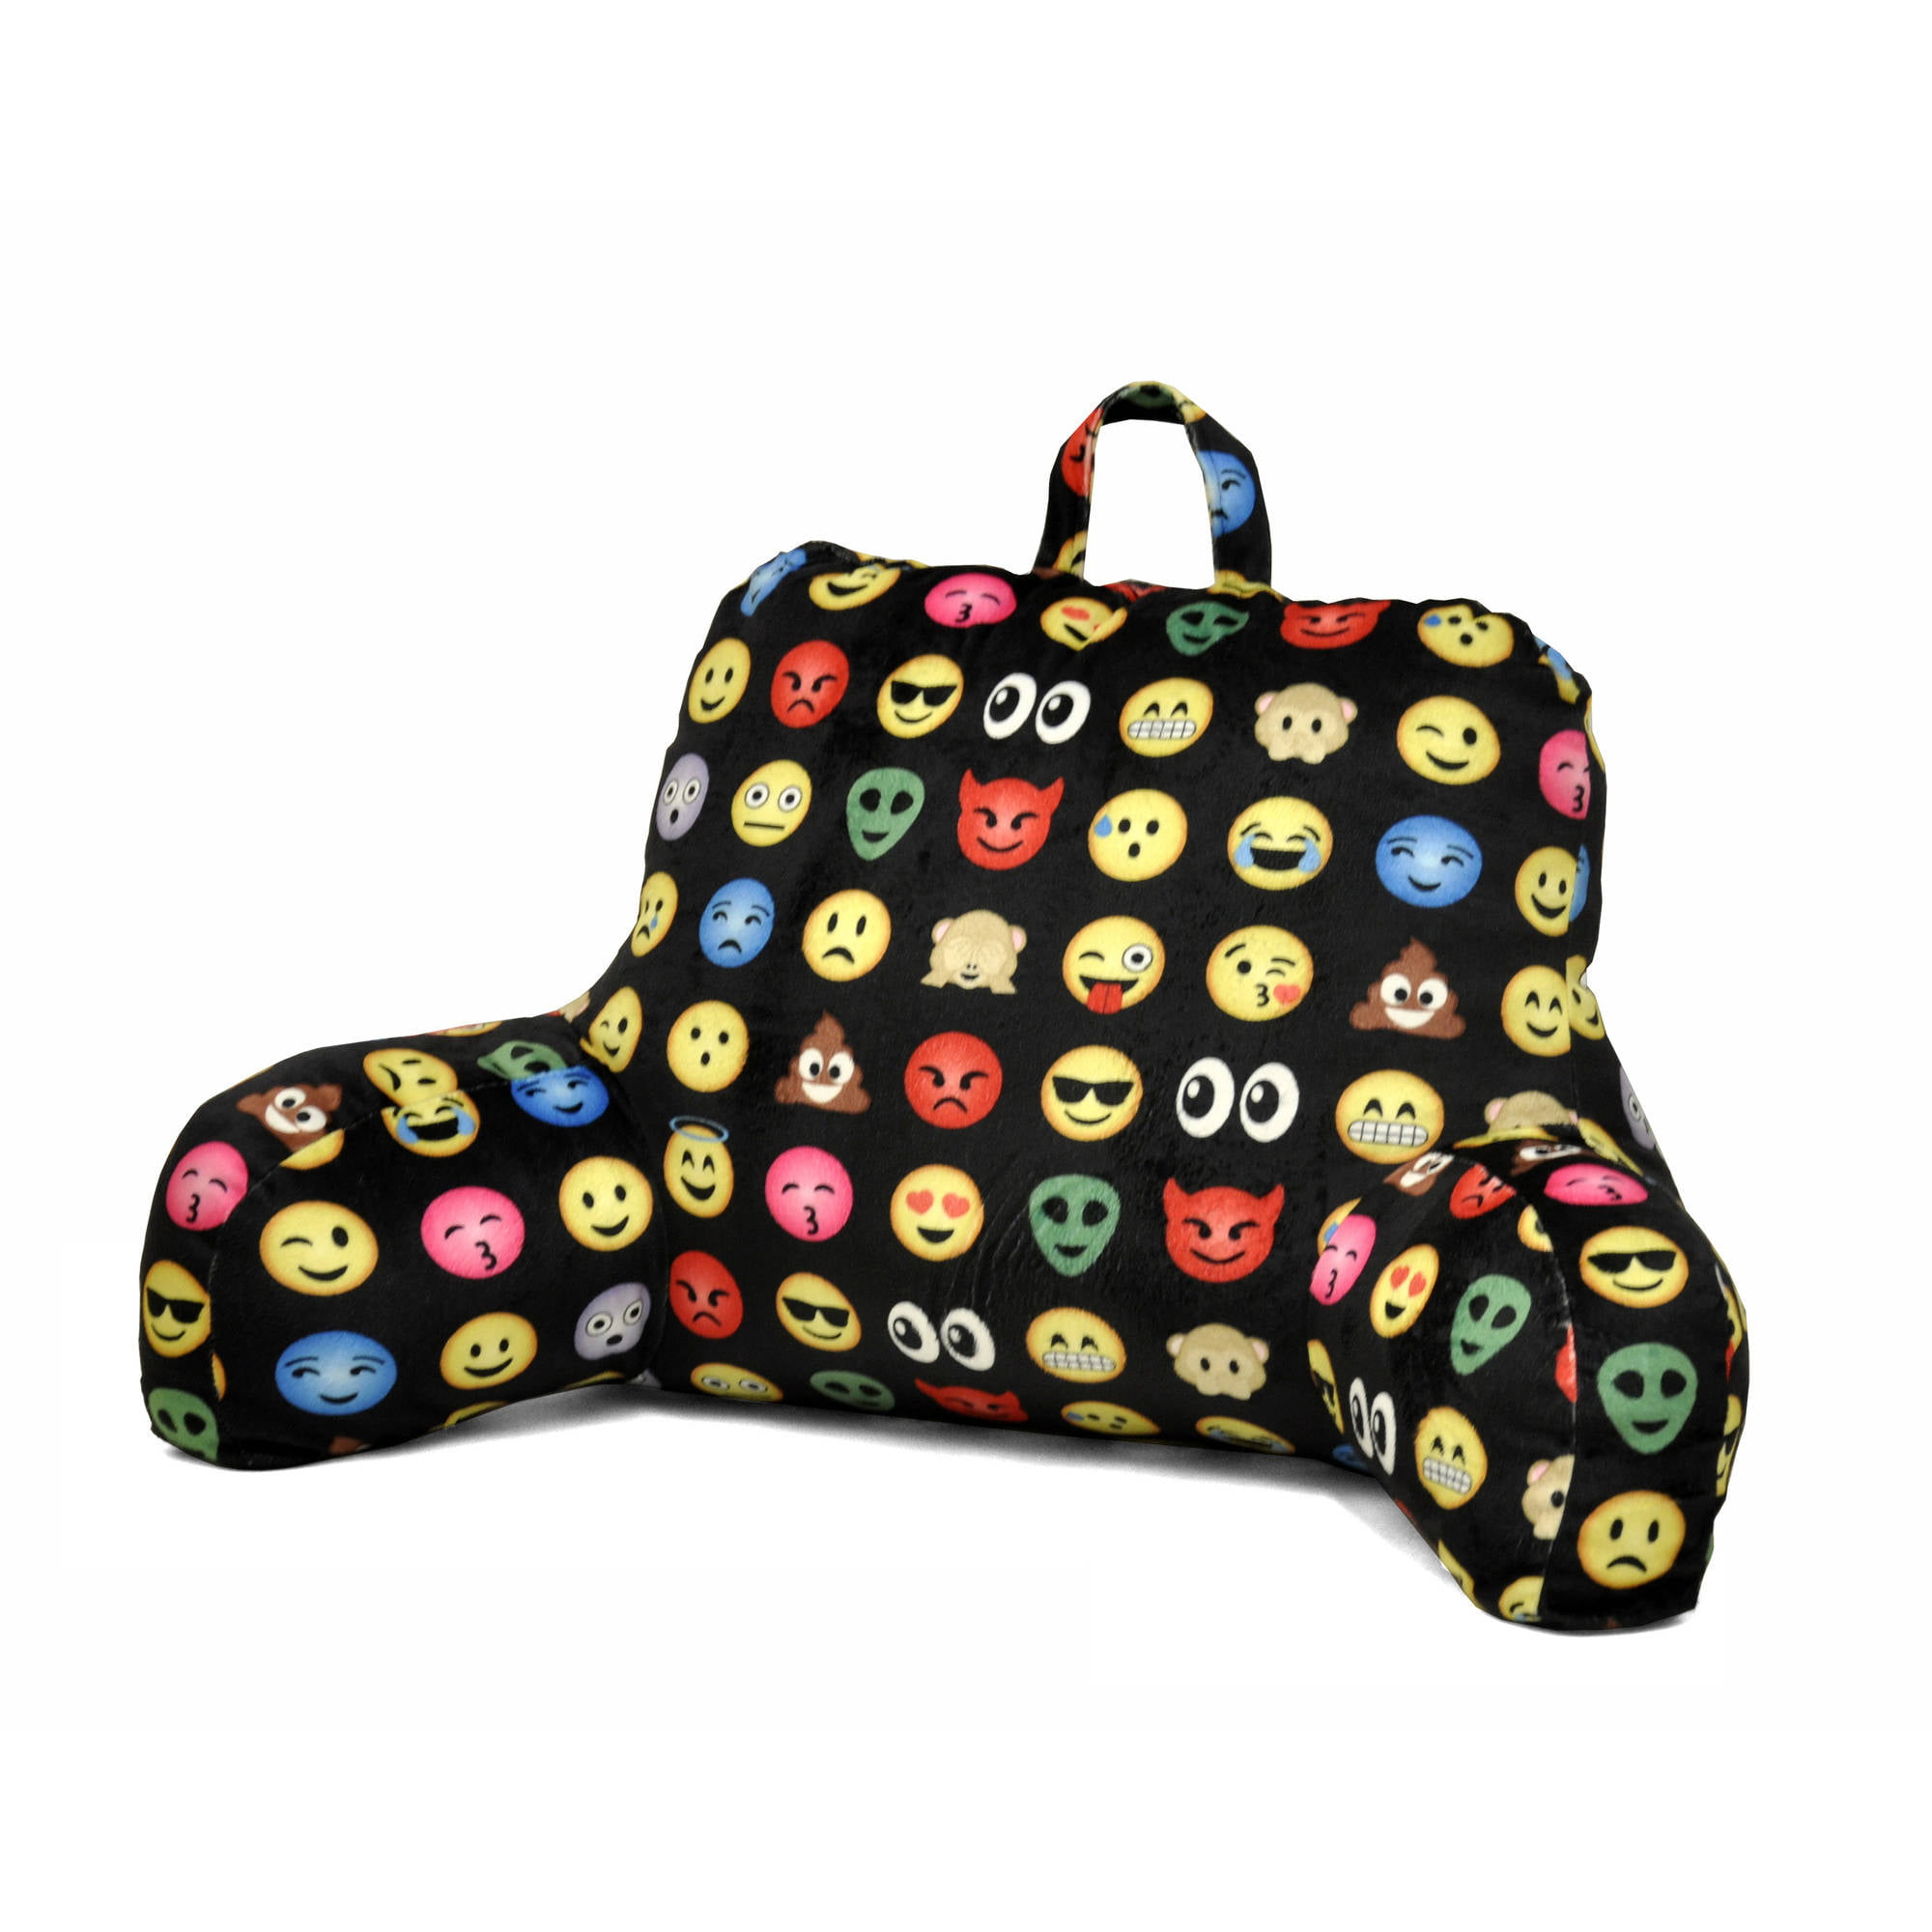 Bed rest pillow walmart - Emoji All Over Backrest Pillow